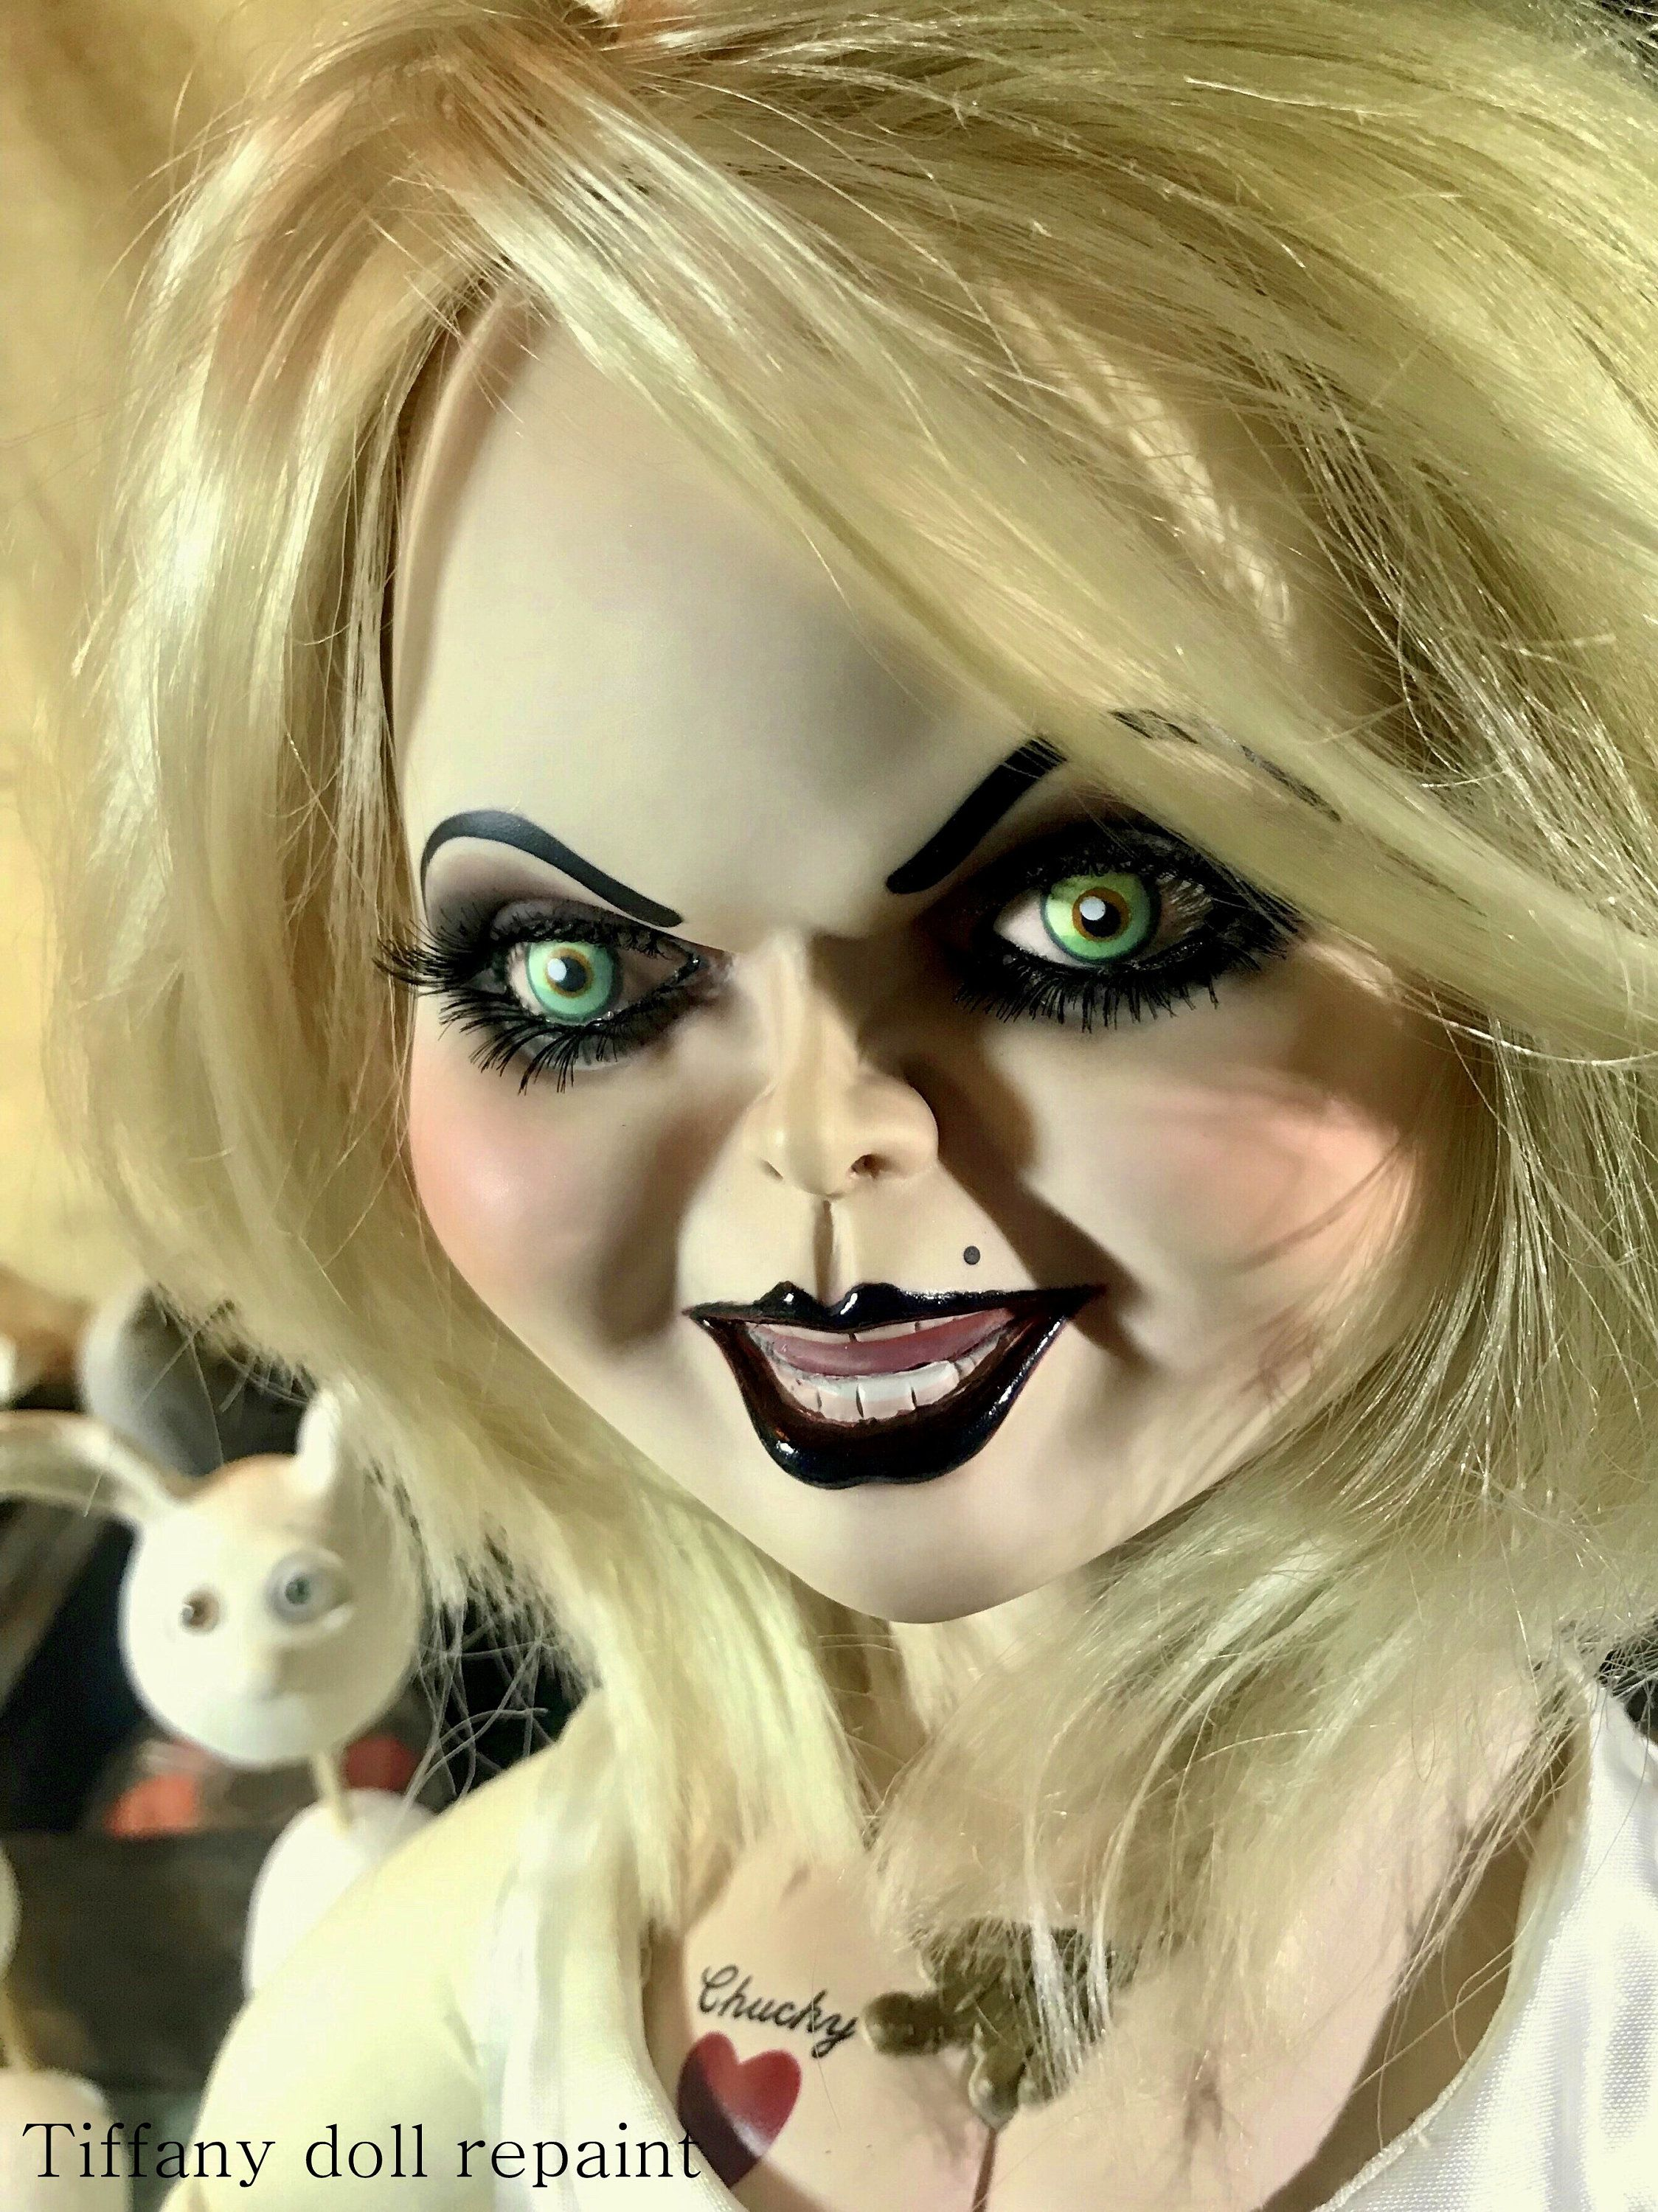 Custom Made To Order Tiffany Bride Of Chucky Doll Repaint Service For Don Bride Of Chucky Tiffany Bride Tiffany Bride Of Chucky